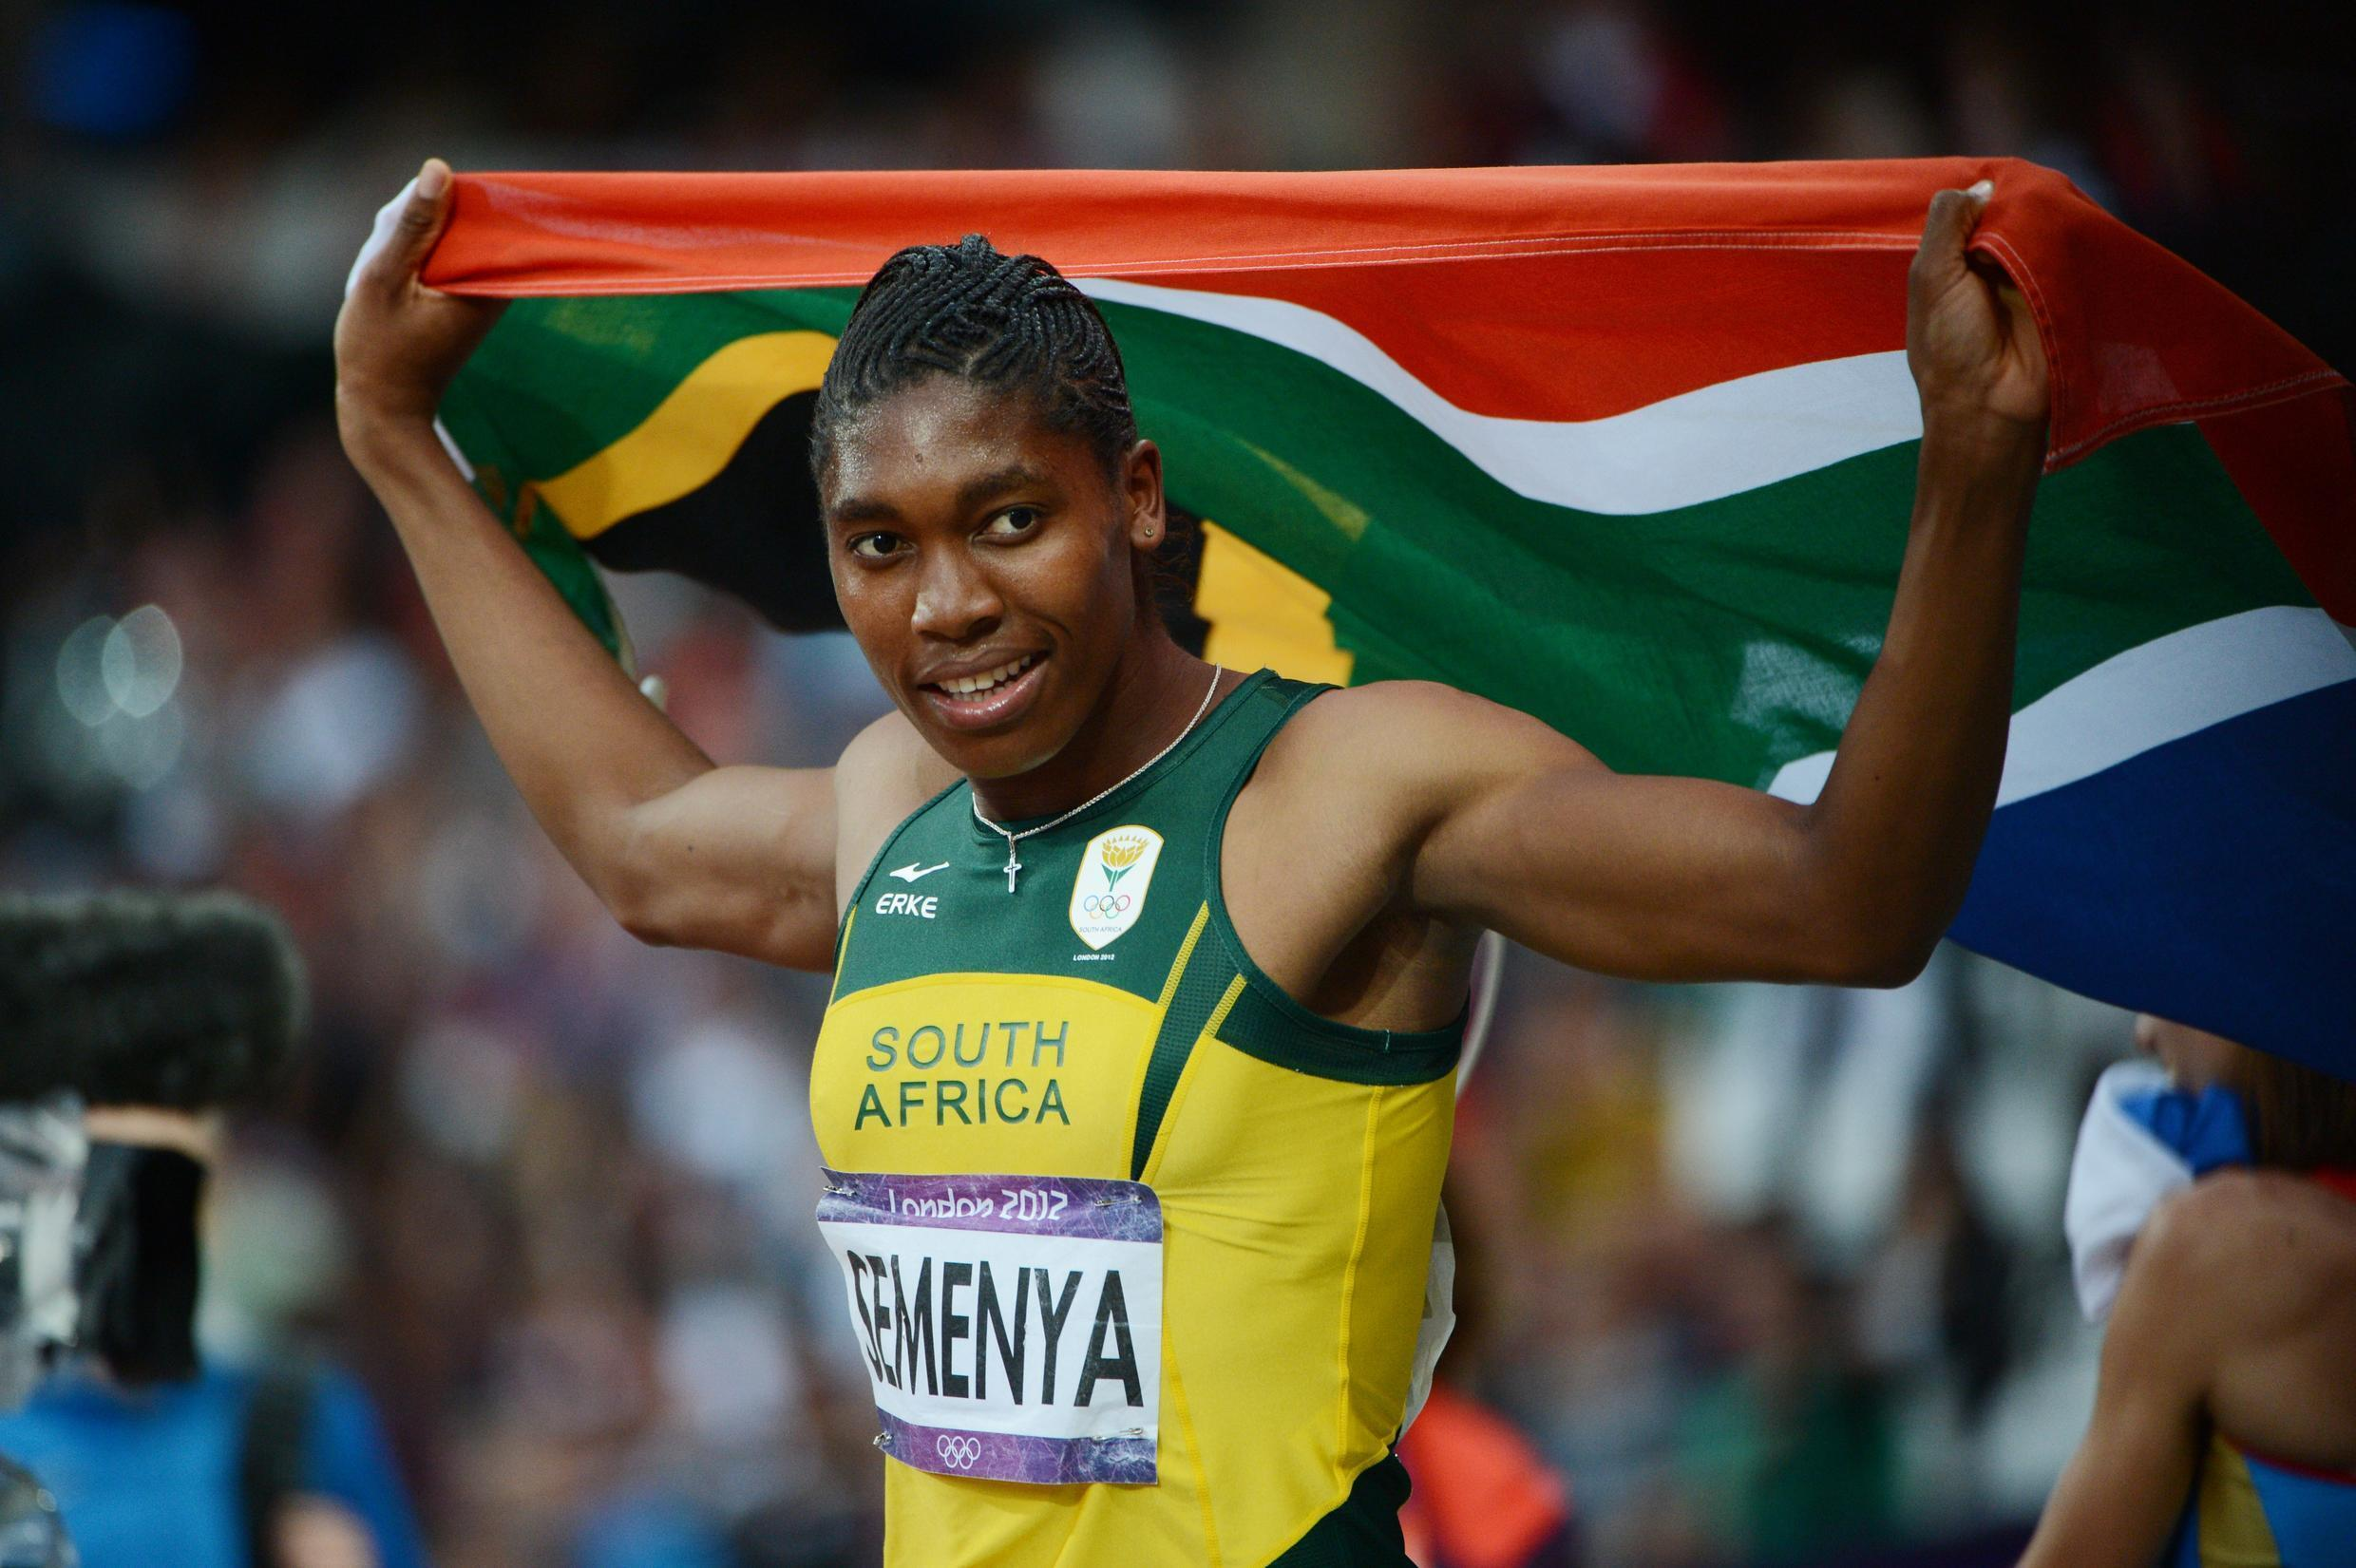 South Africa's Caster Semenya celebrates after the women's 800m final at the athletics event of the London 2012 Olympic Games on 11 August 2012.